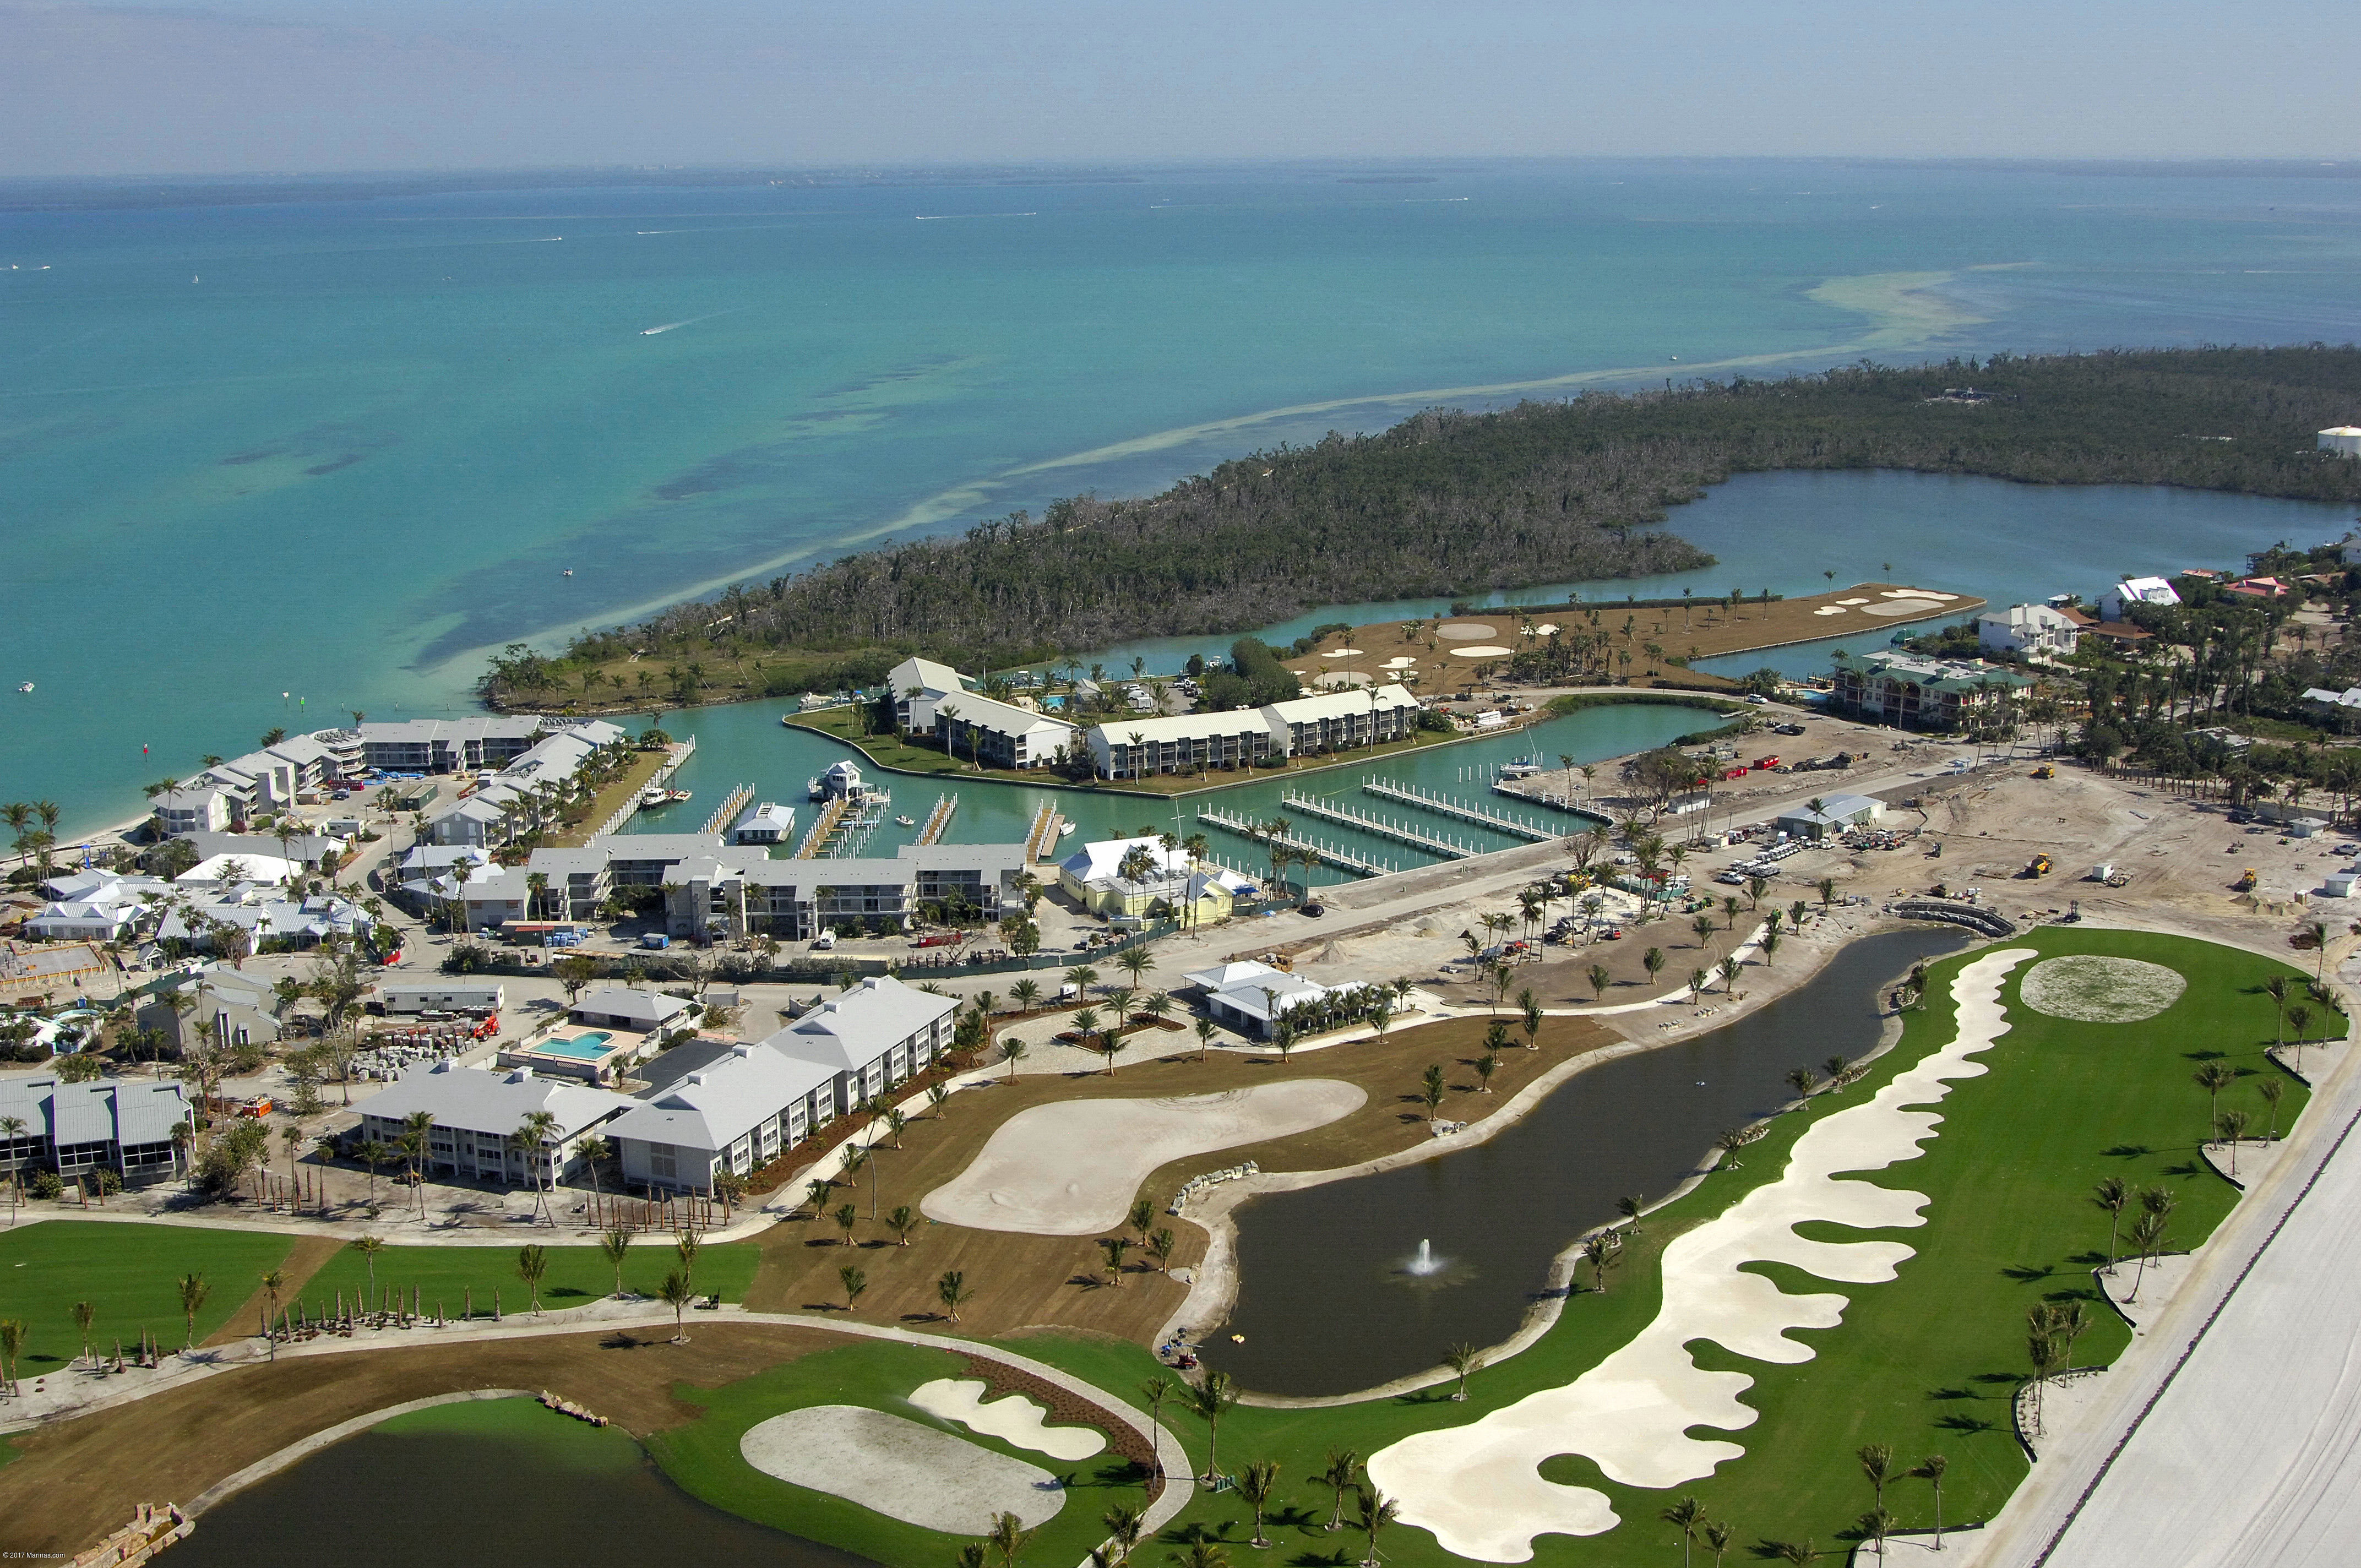 South Seas Island Resort Marina Captiva